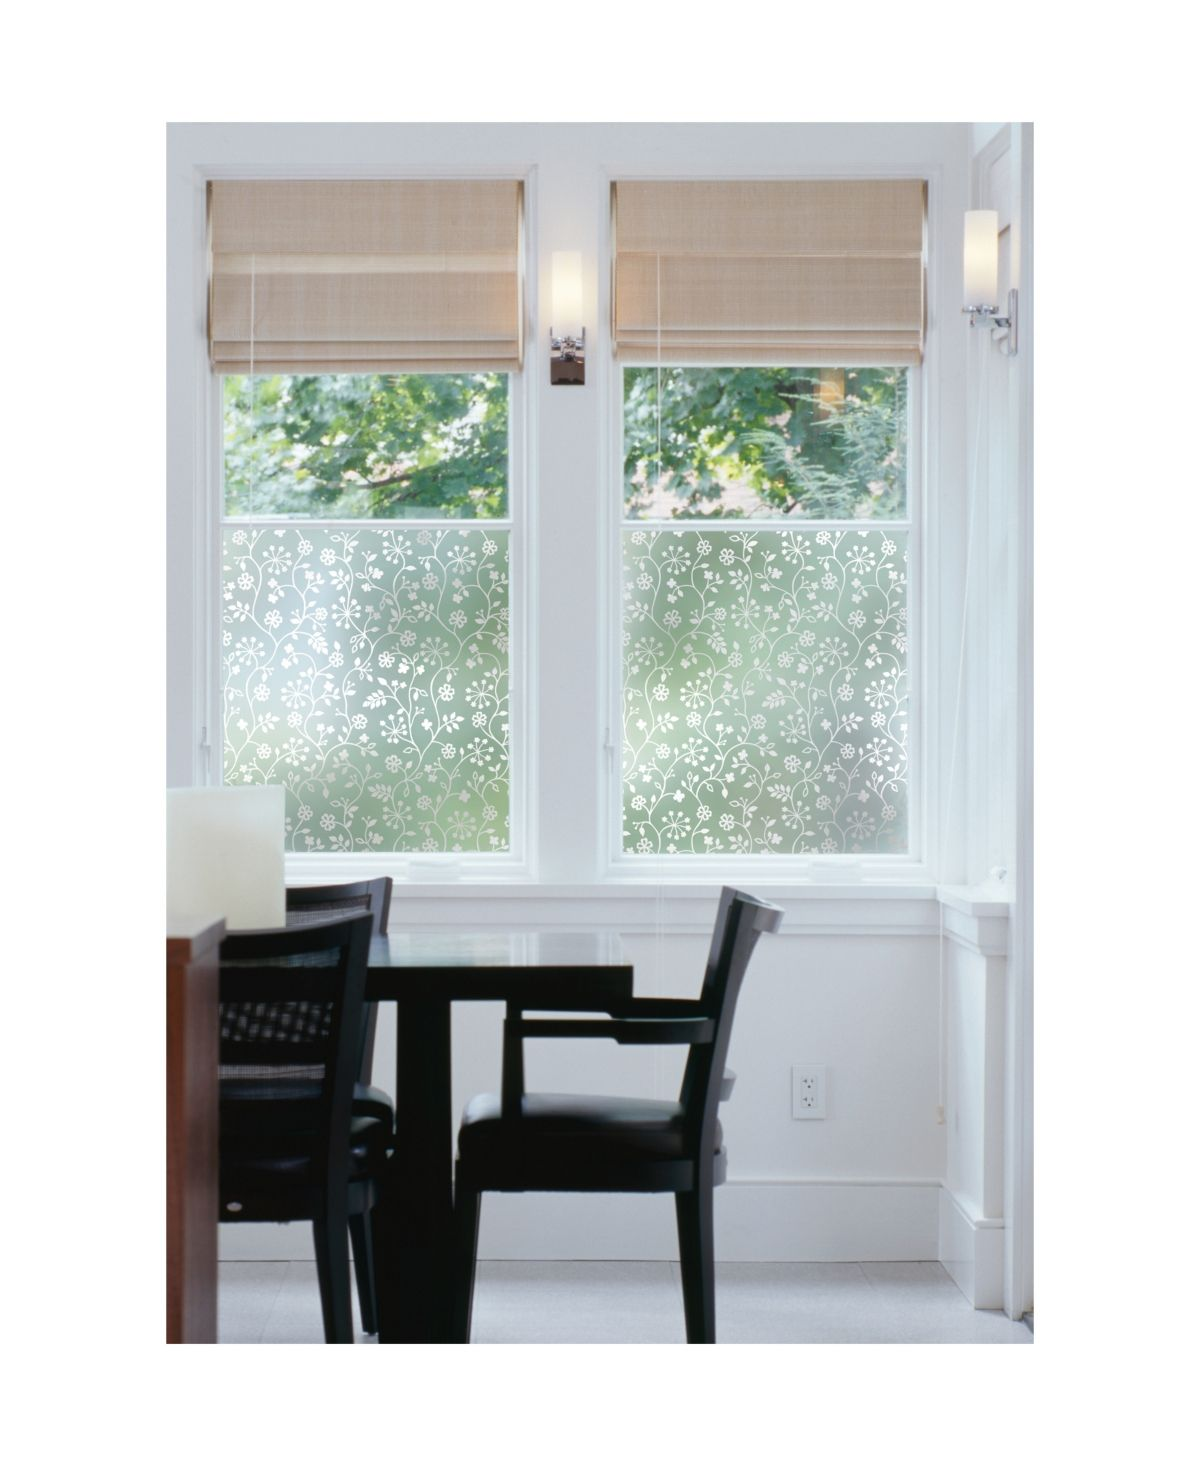 Brewster Home Fashions Winter Garden Window Film Reviews Wall